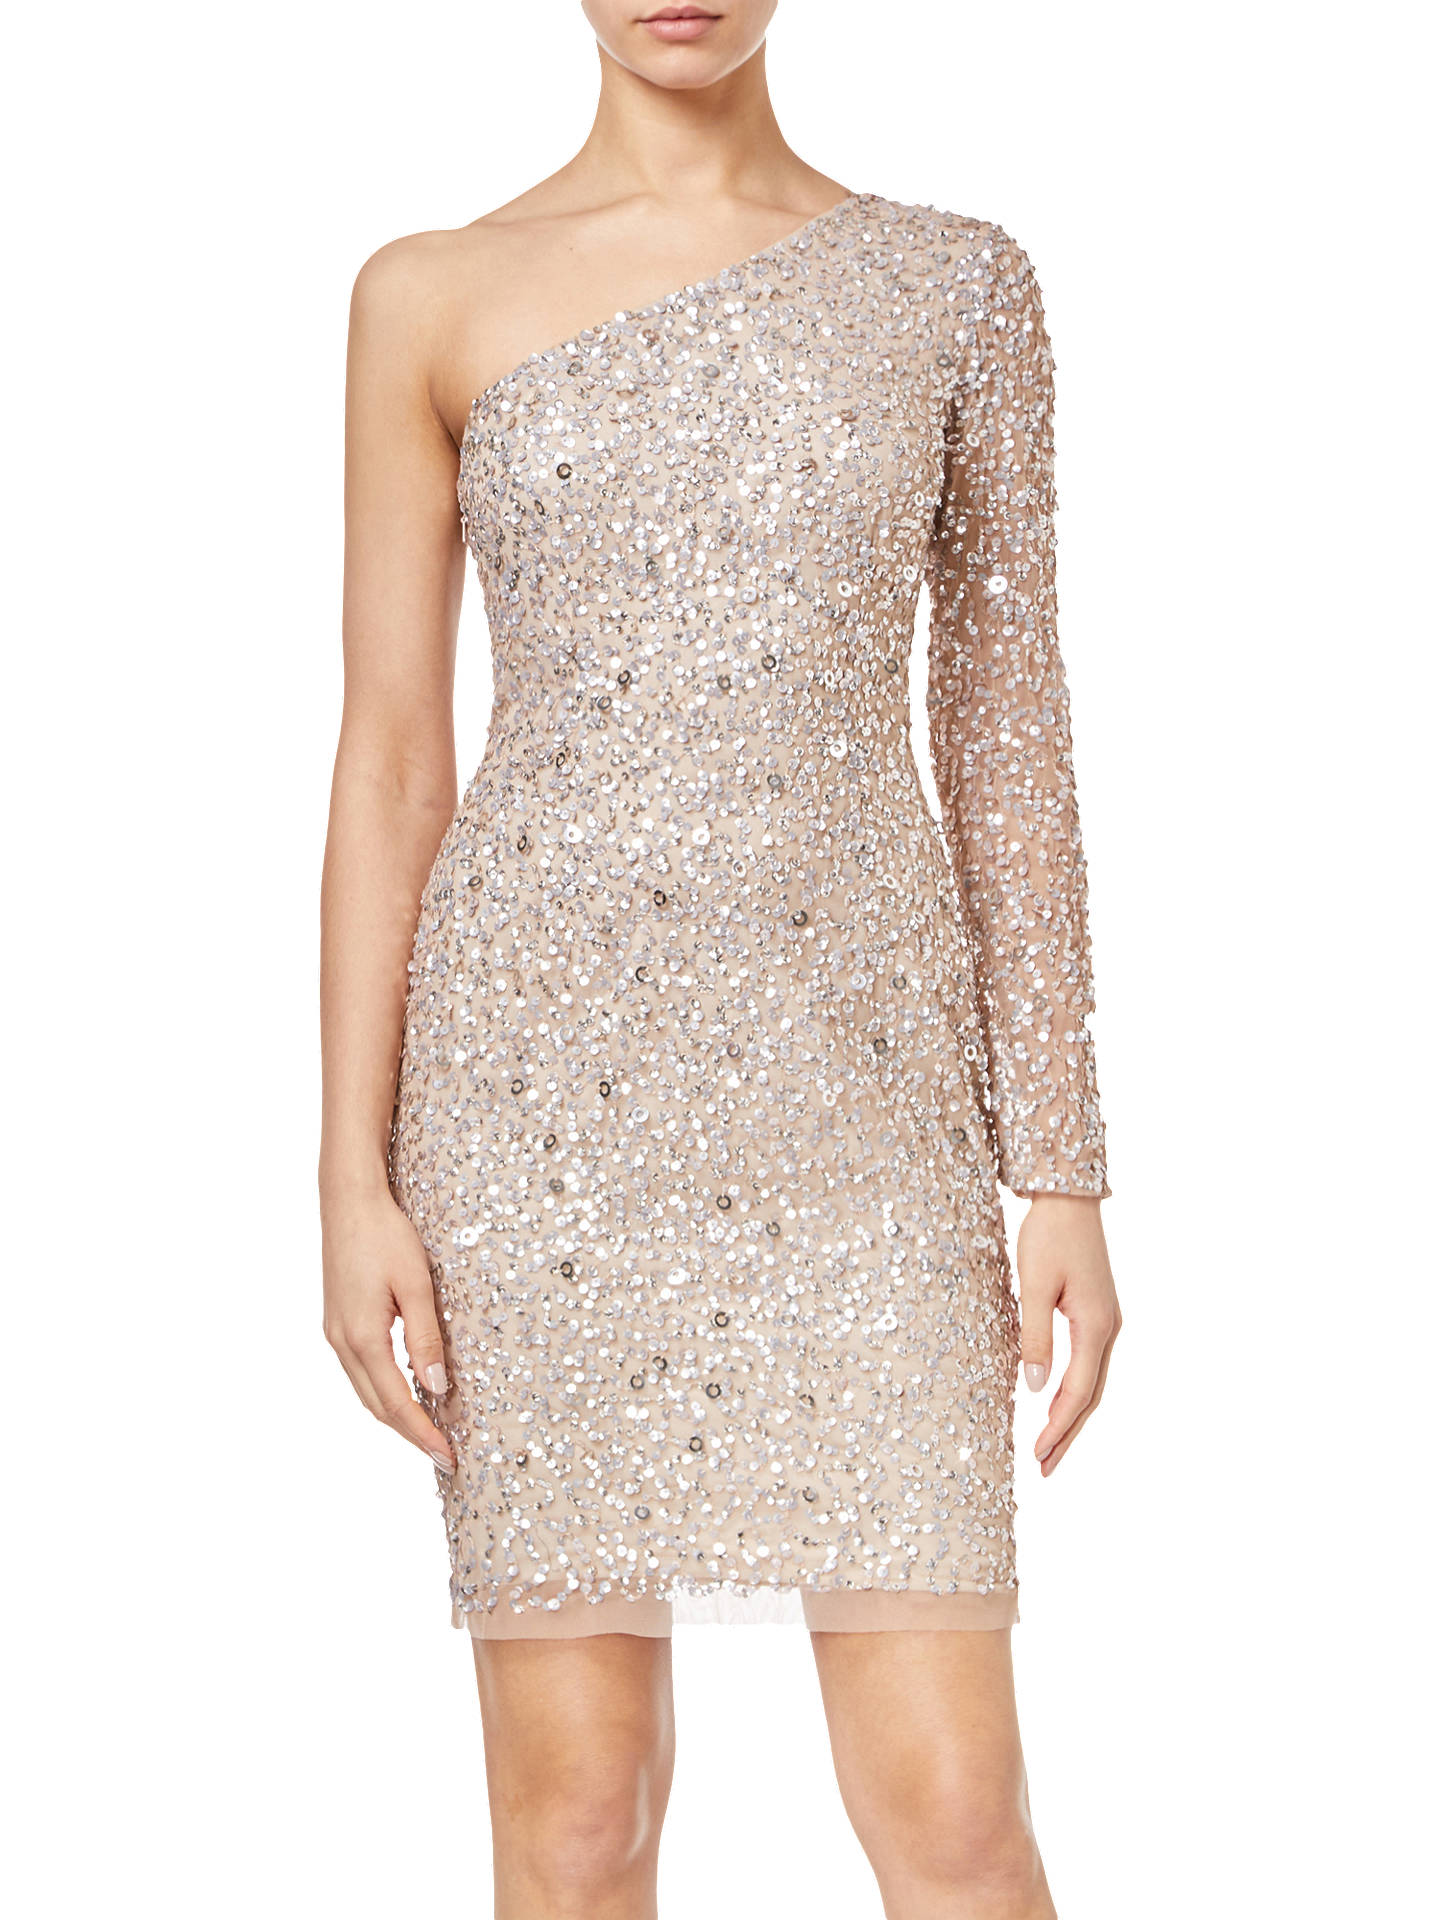 Buy Adrianna Papell One Shoulder Sequin Dress, Champagne, 6 Online at johnlewis.com